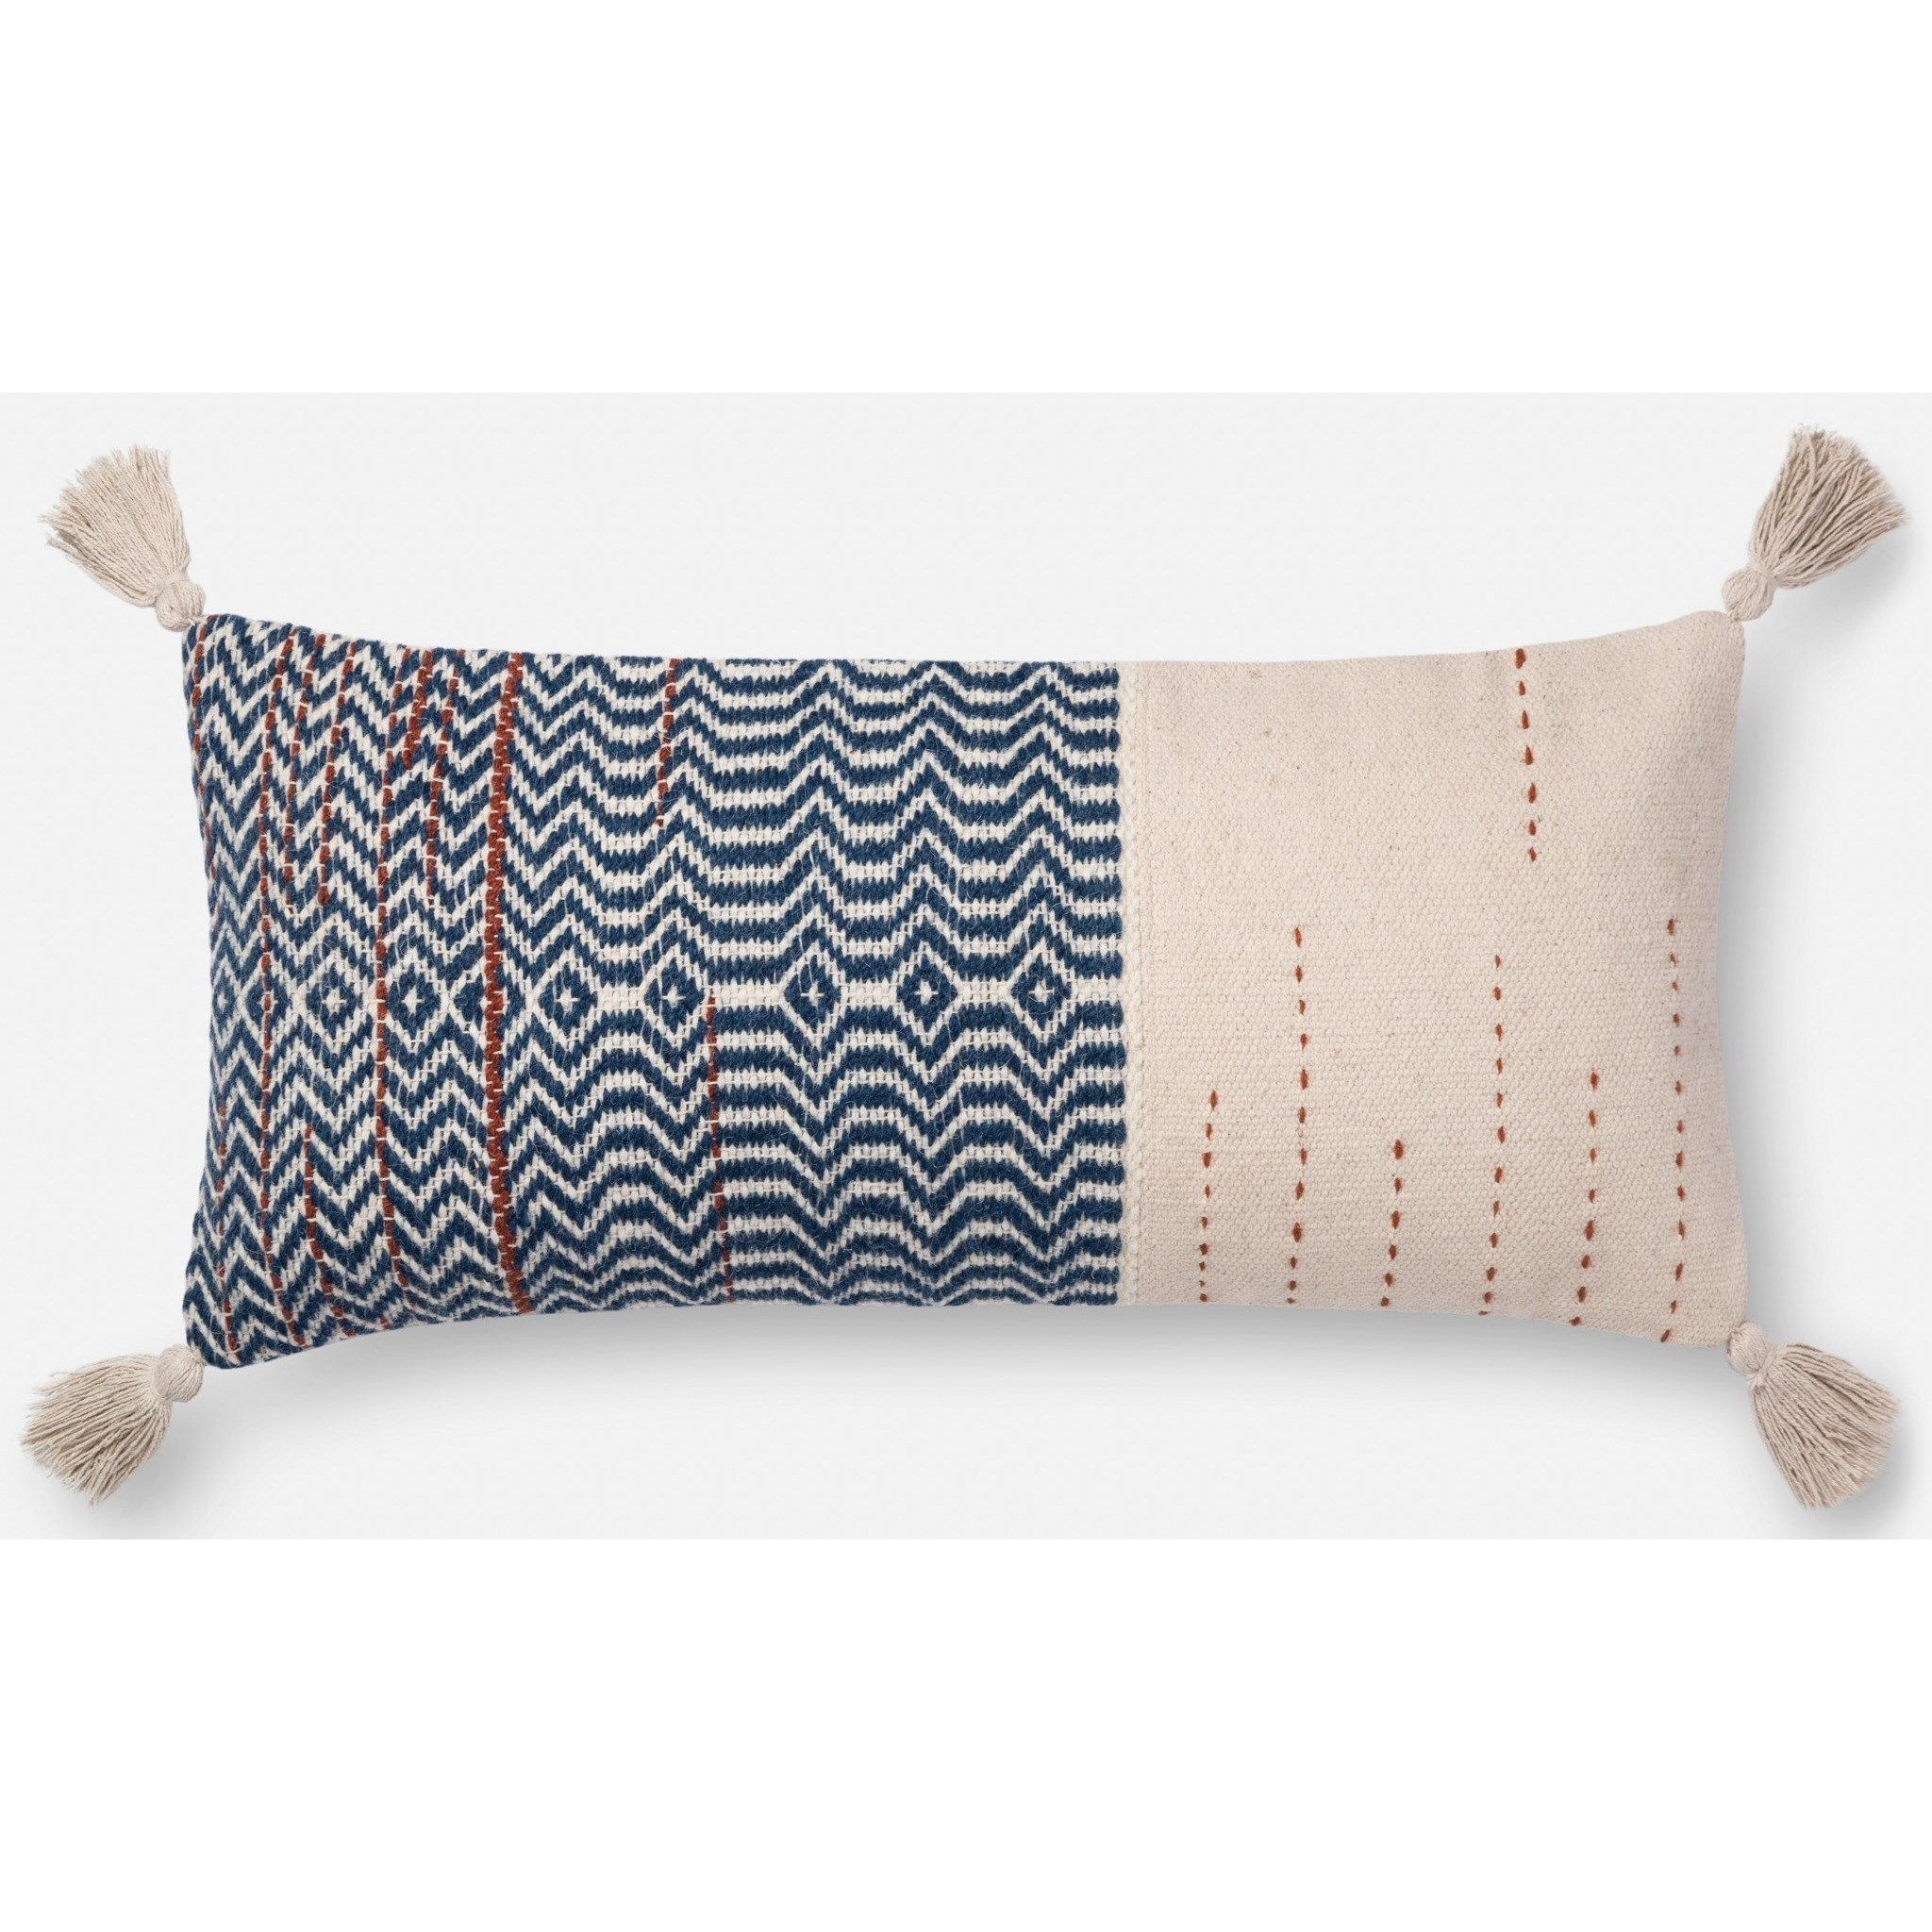 "12"" x 27"" Down Pillow"